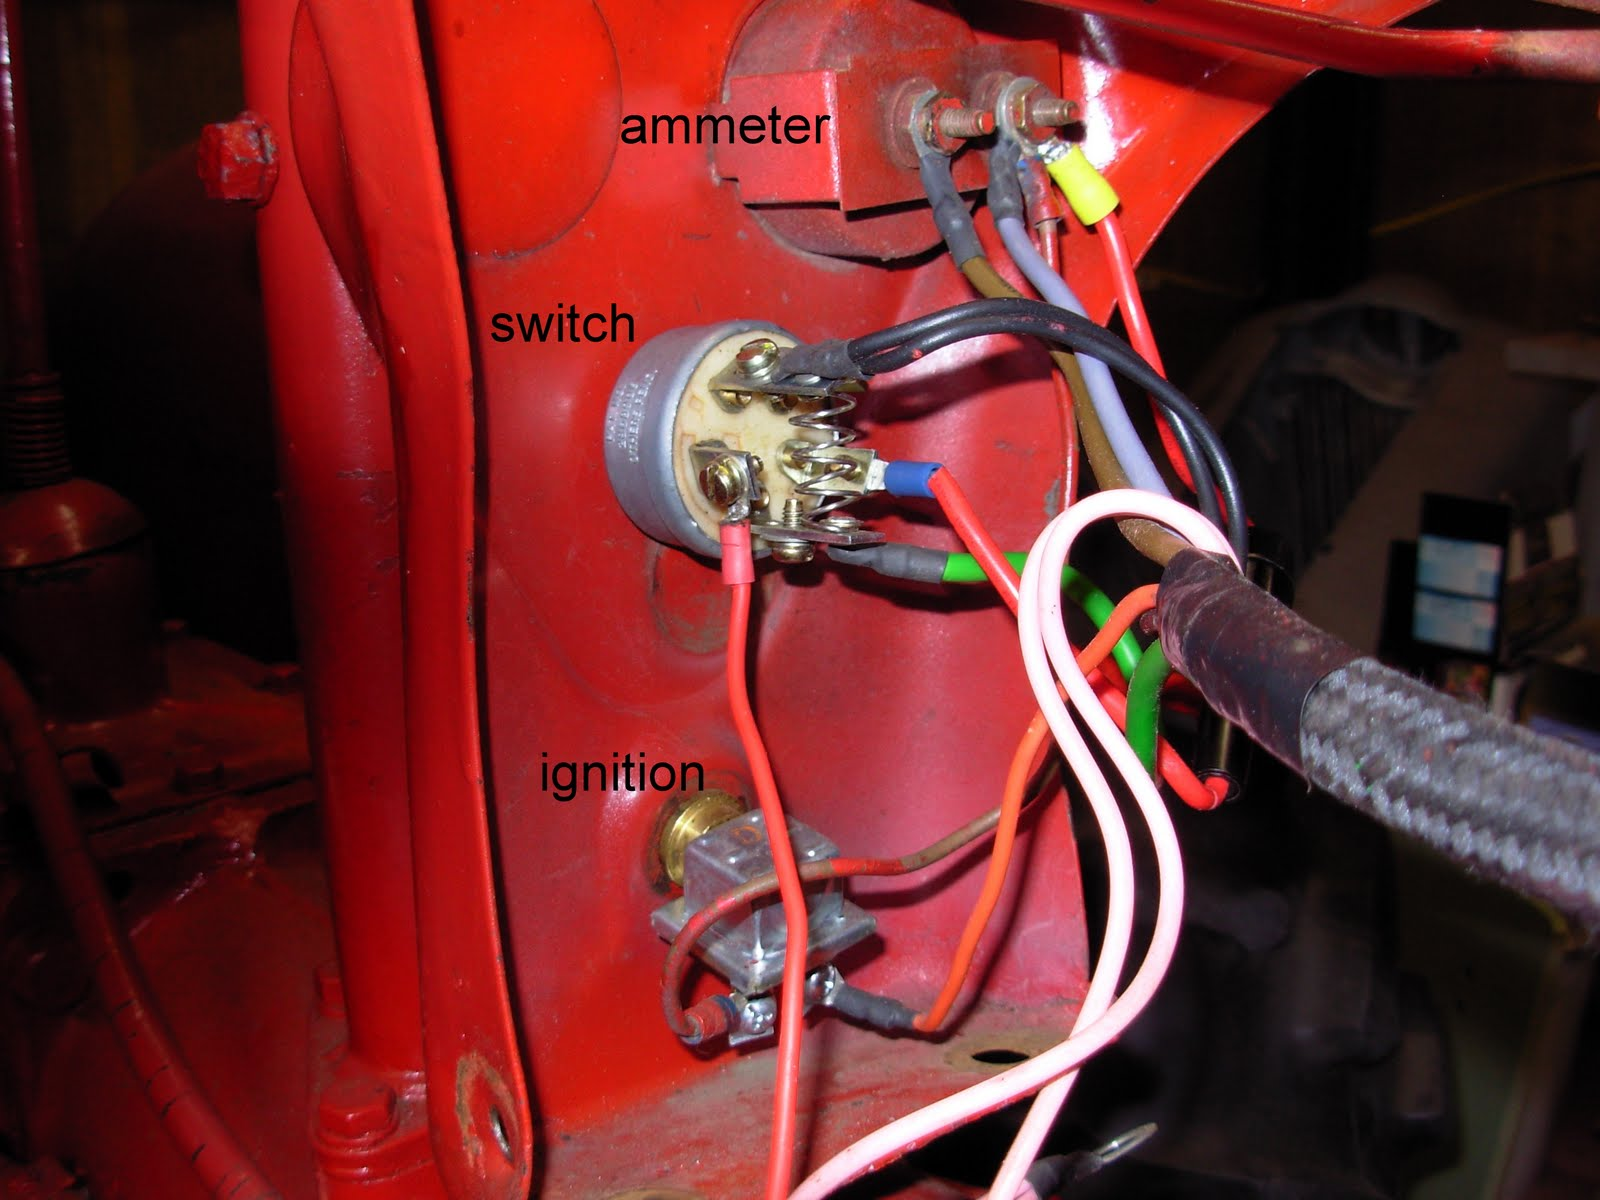 farmall light switch wiring diagram 1942 farmall h wiring diagram 1942 farmall h wiring diagram [ 1600 x 1200 Pixel ]